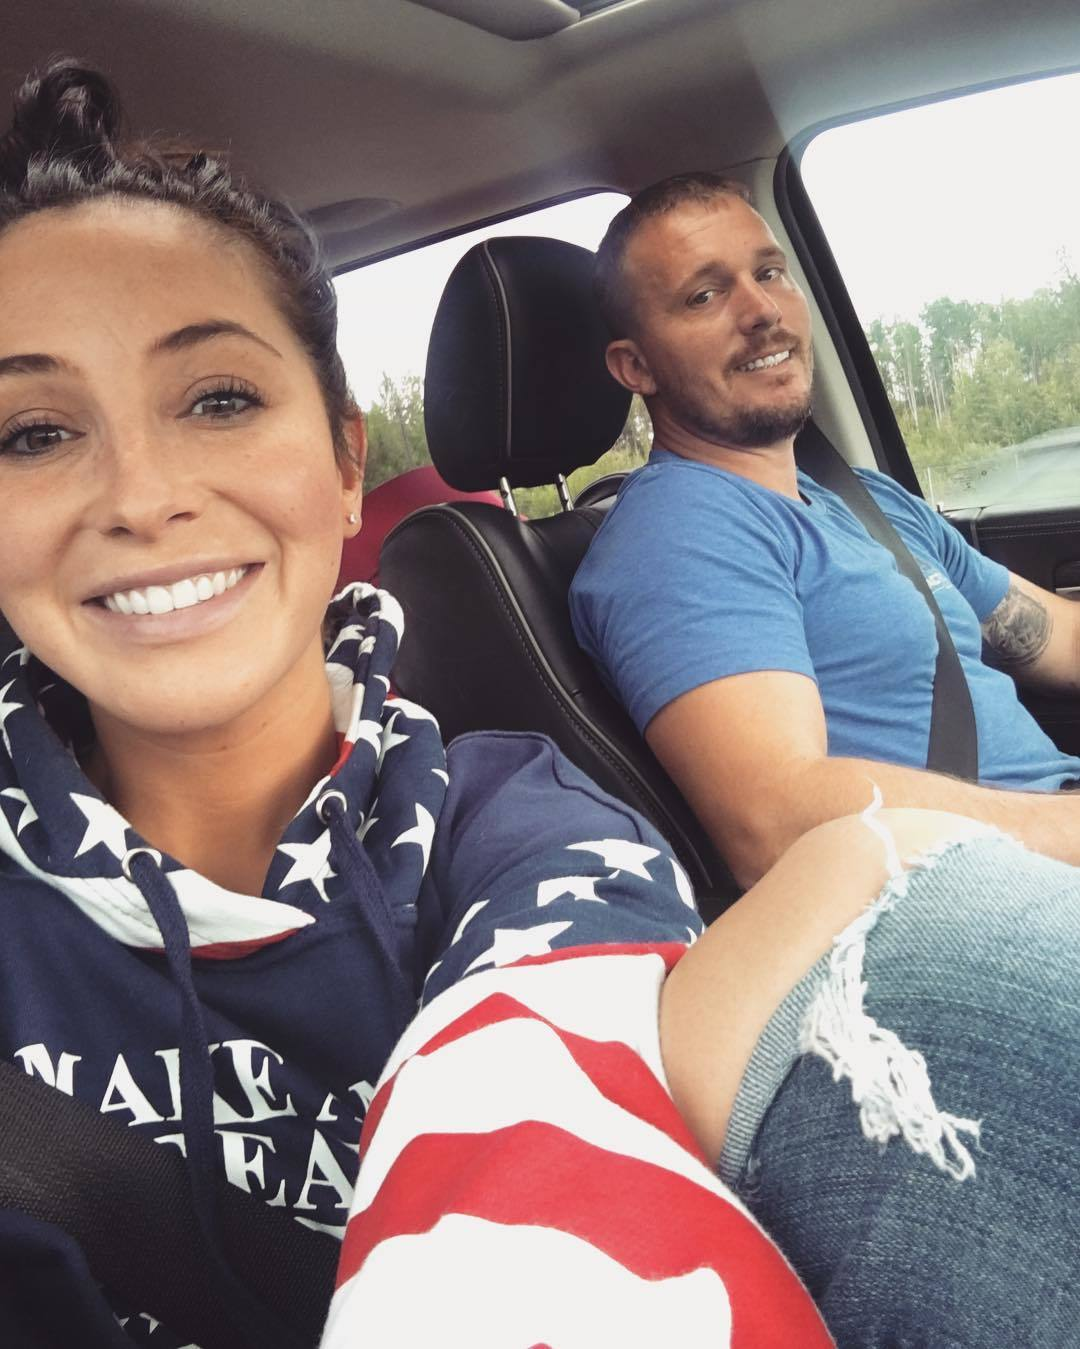 """Happy 4th 🇺🇸""   Bristol Palin, who posted this selfie with Dakota Meyer on July 4, 2016"